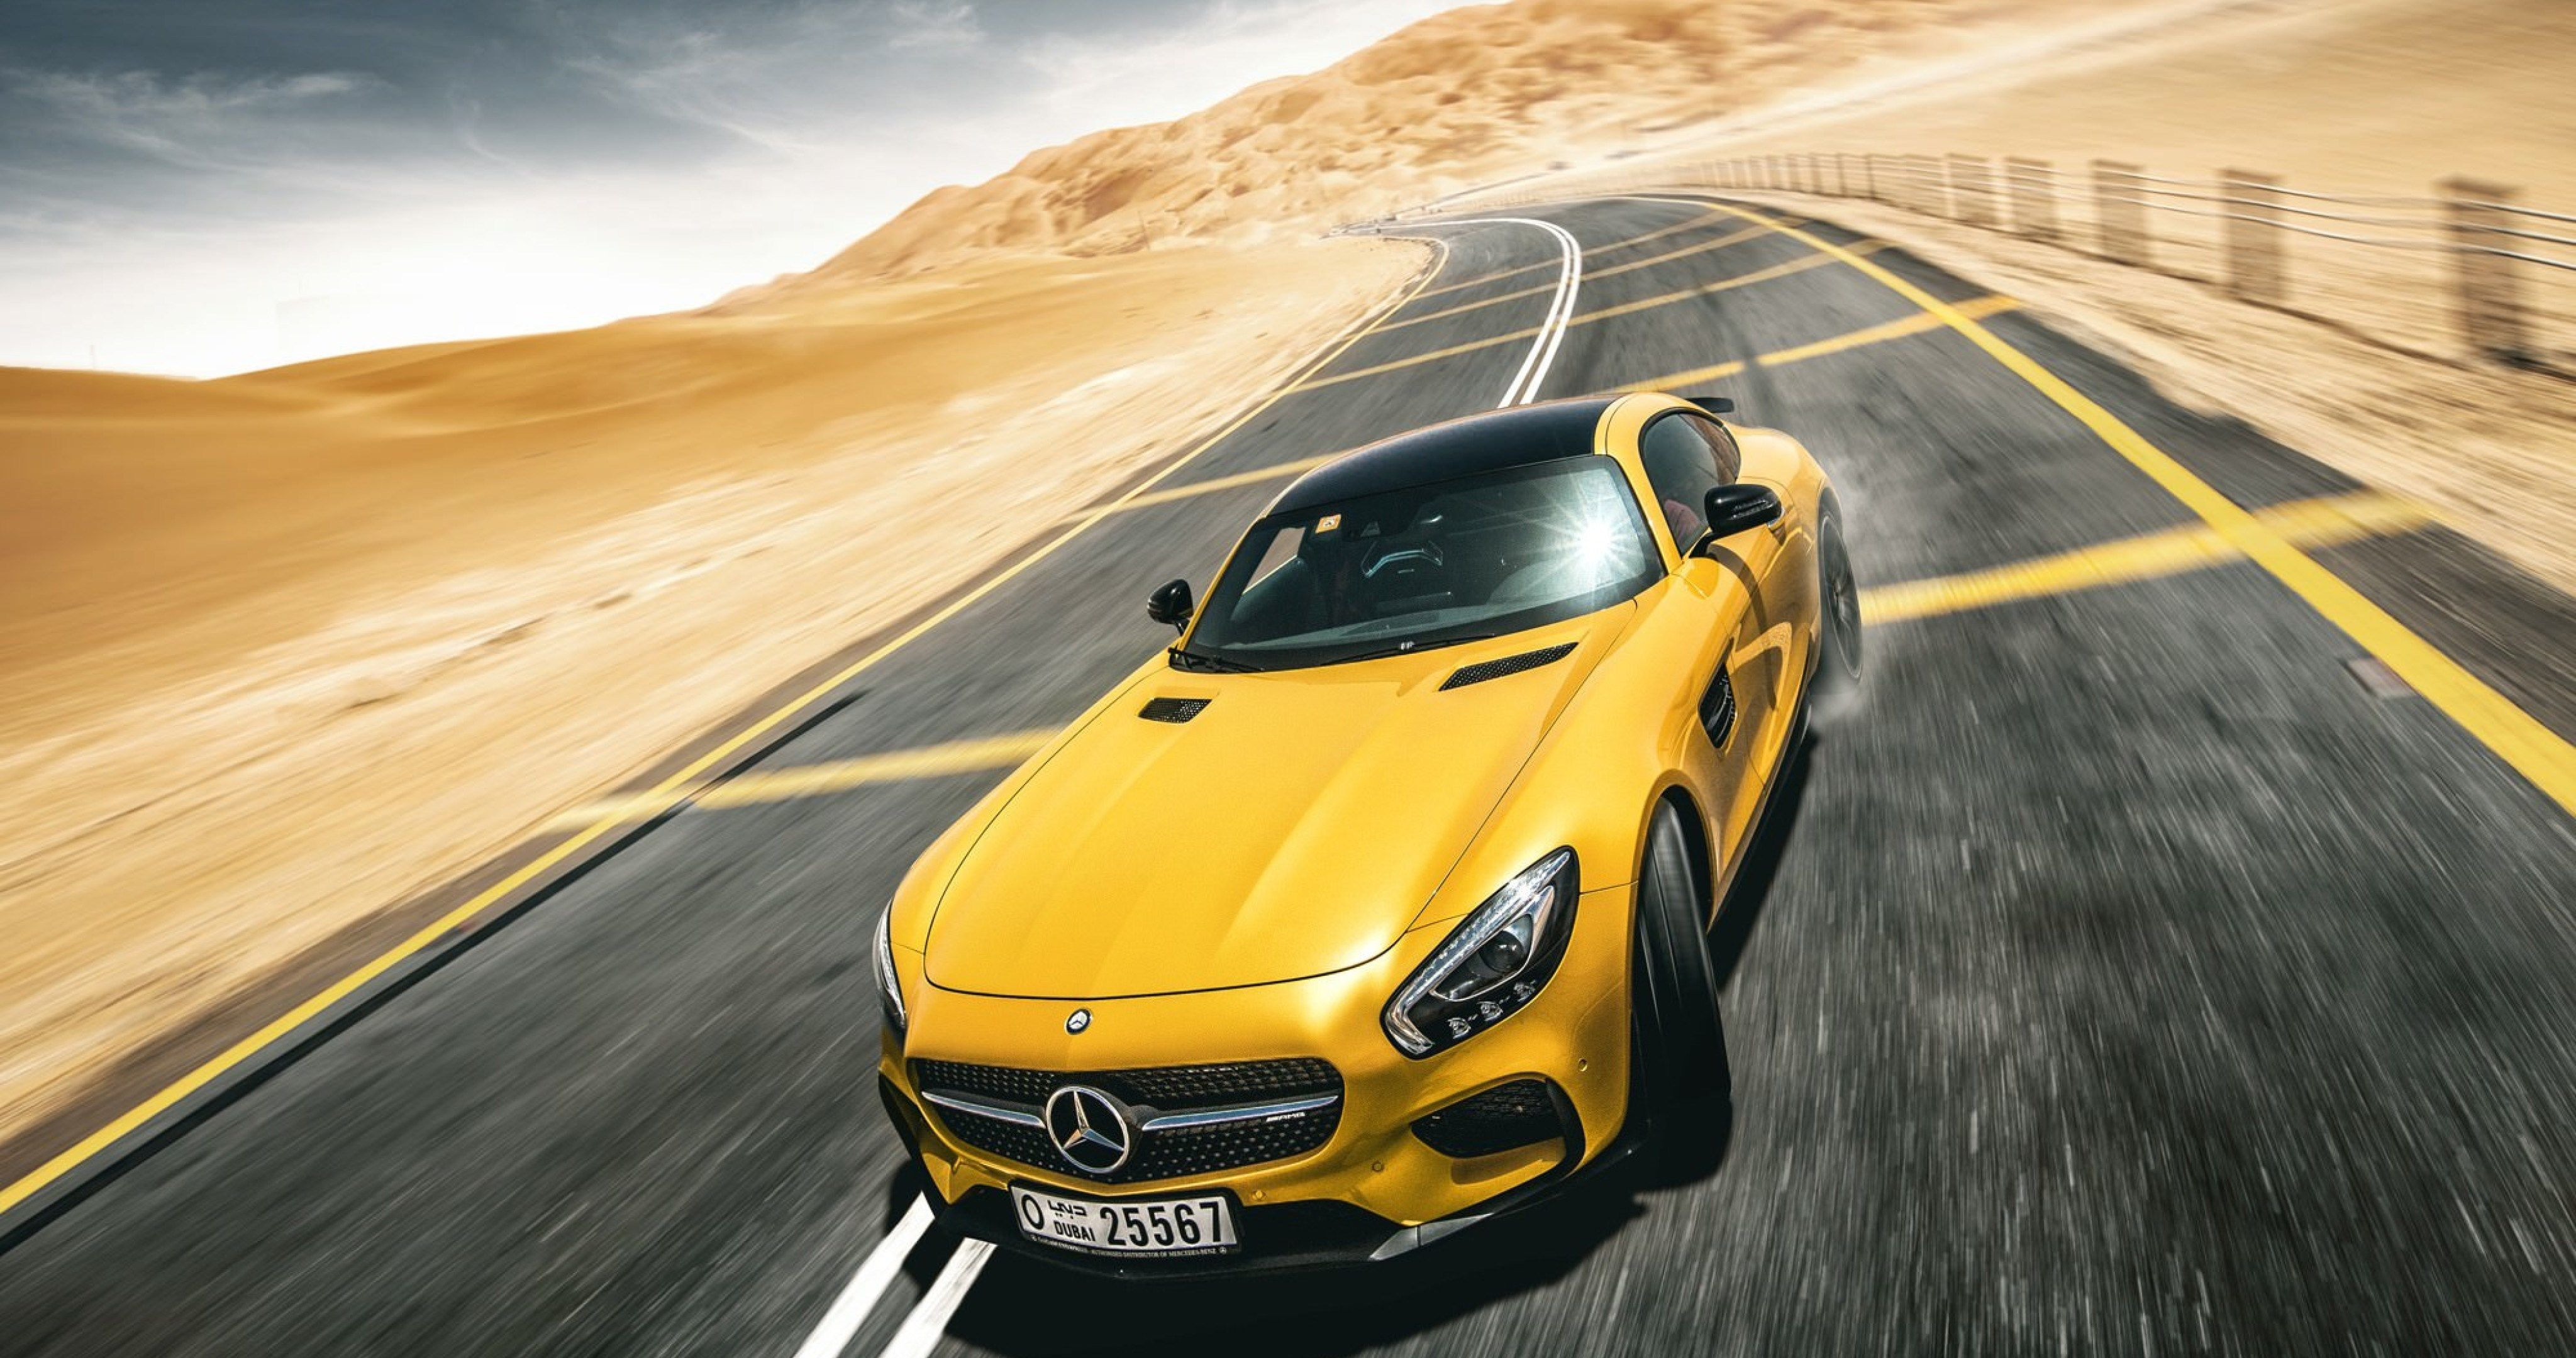 Mercedes Benz Amg Gt S 4k Ultra Hd Wallpaper With Images